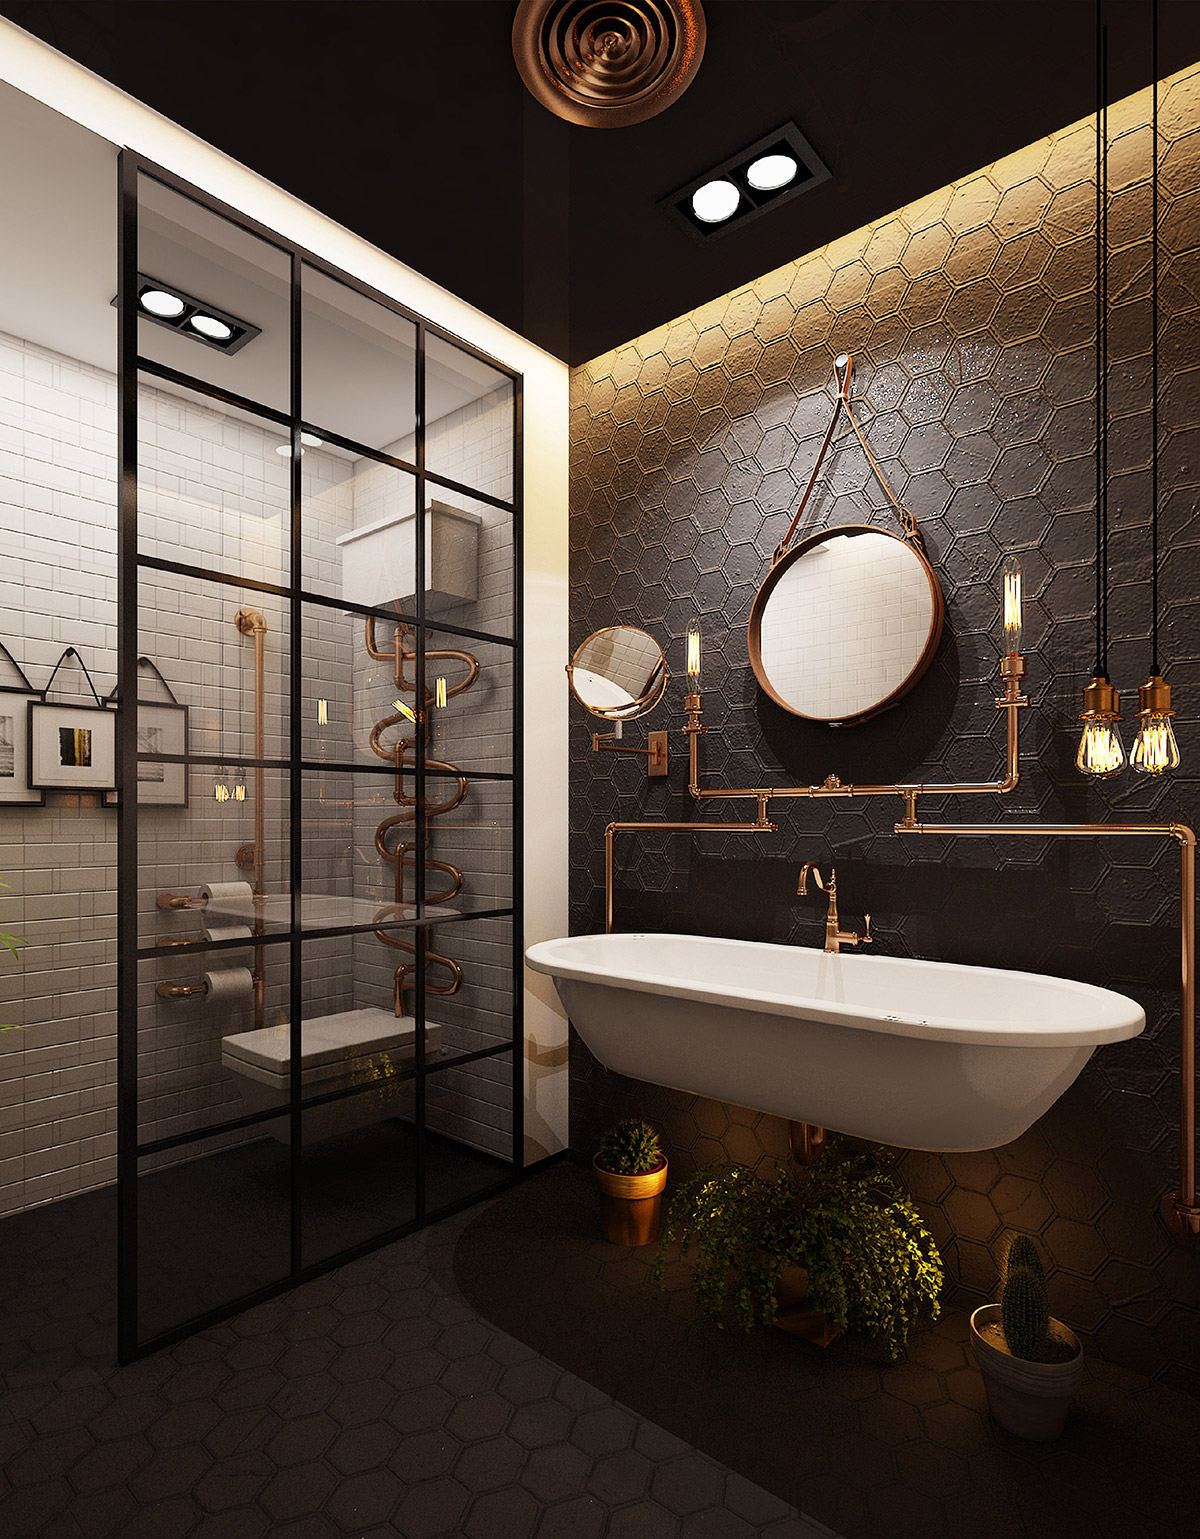 51 Industrial Style Bathrooms Plus Ideas & Accessories You Can Copy From Them images 32